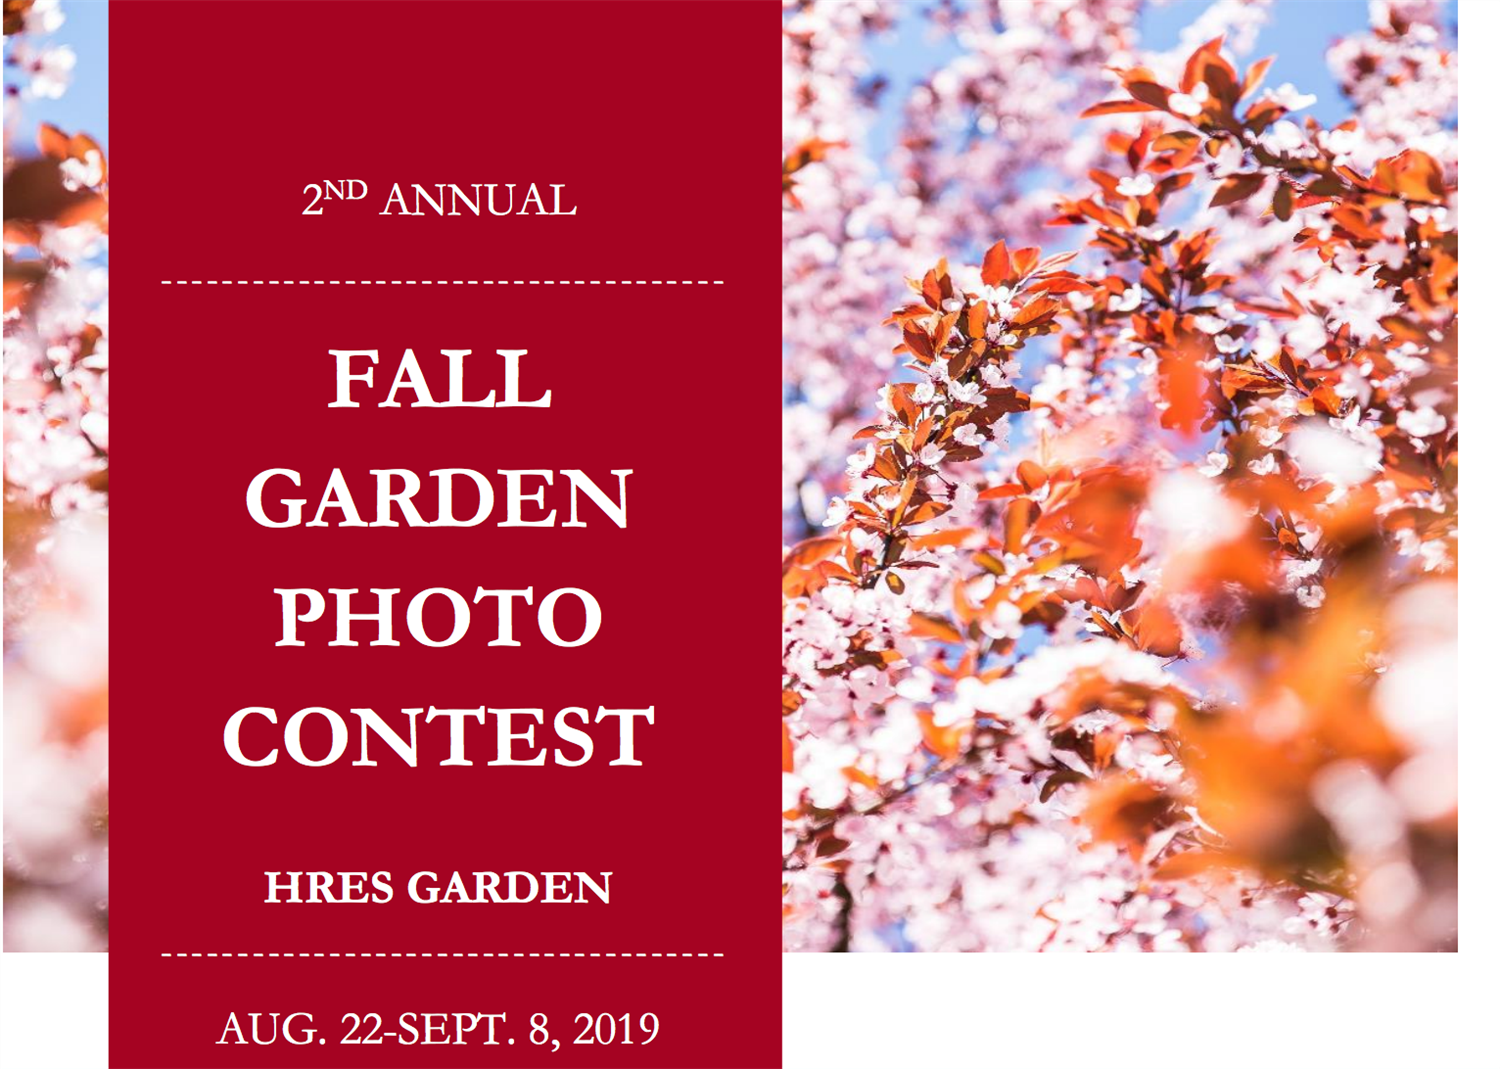 2nd Annual Fall Garden Photo Contest!